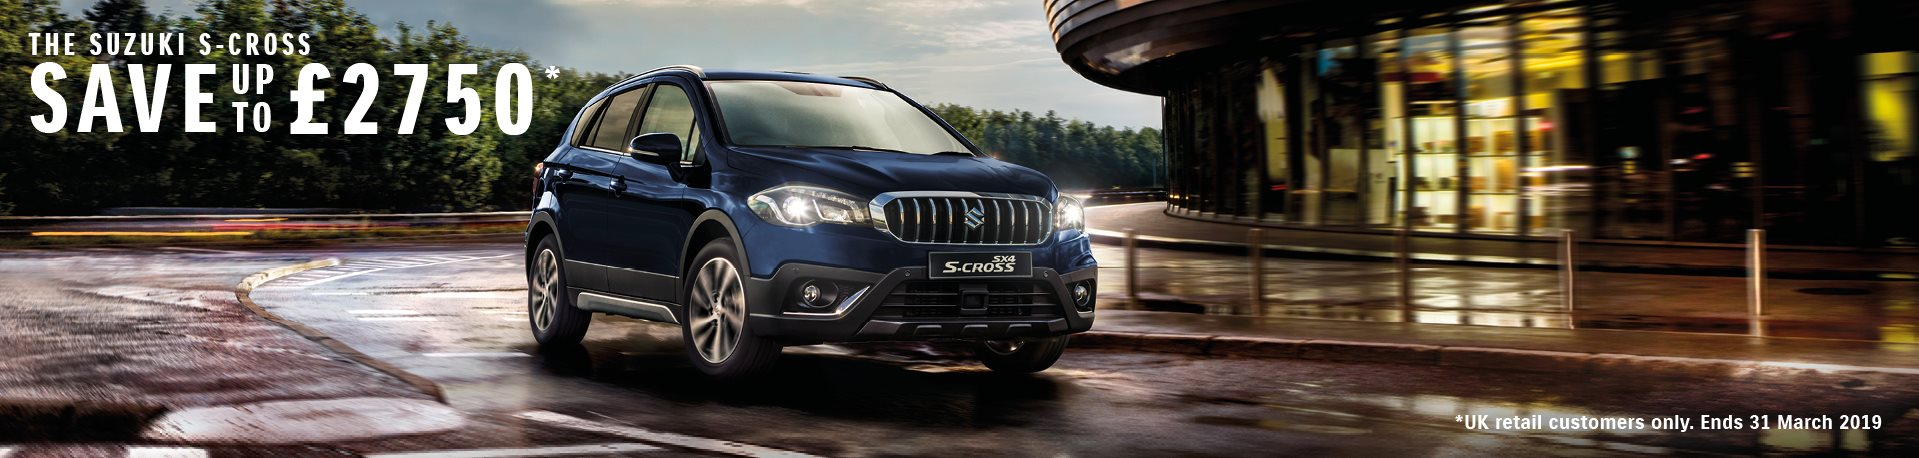 S-Cross Offer